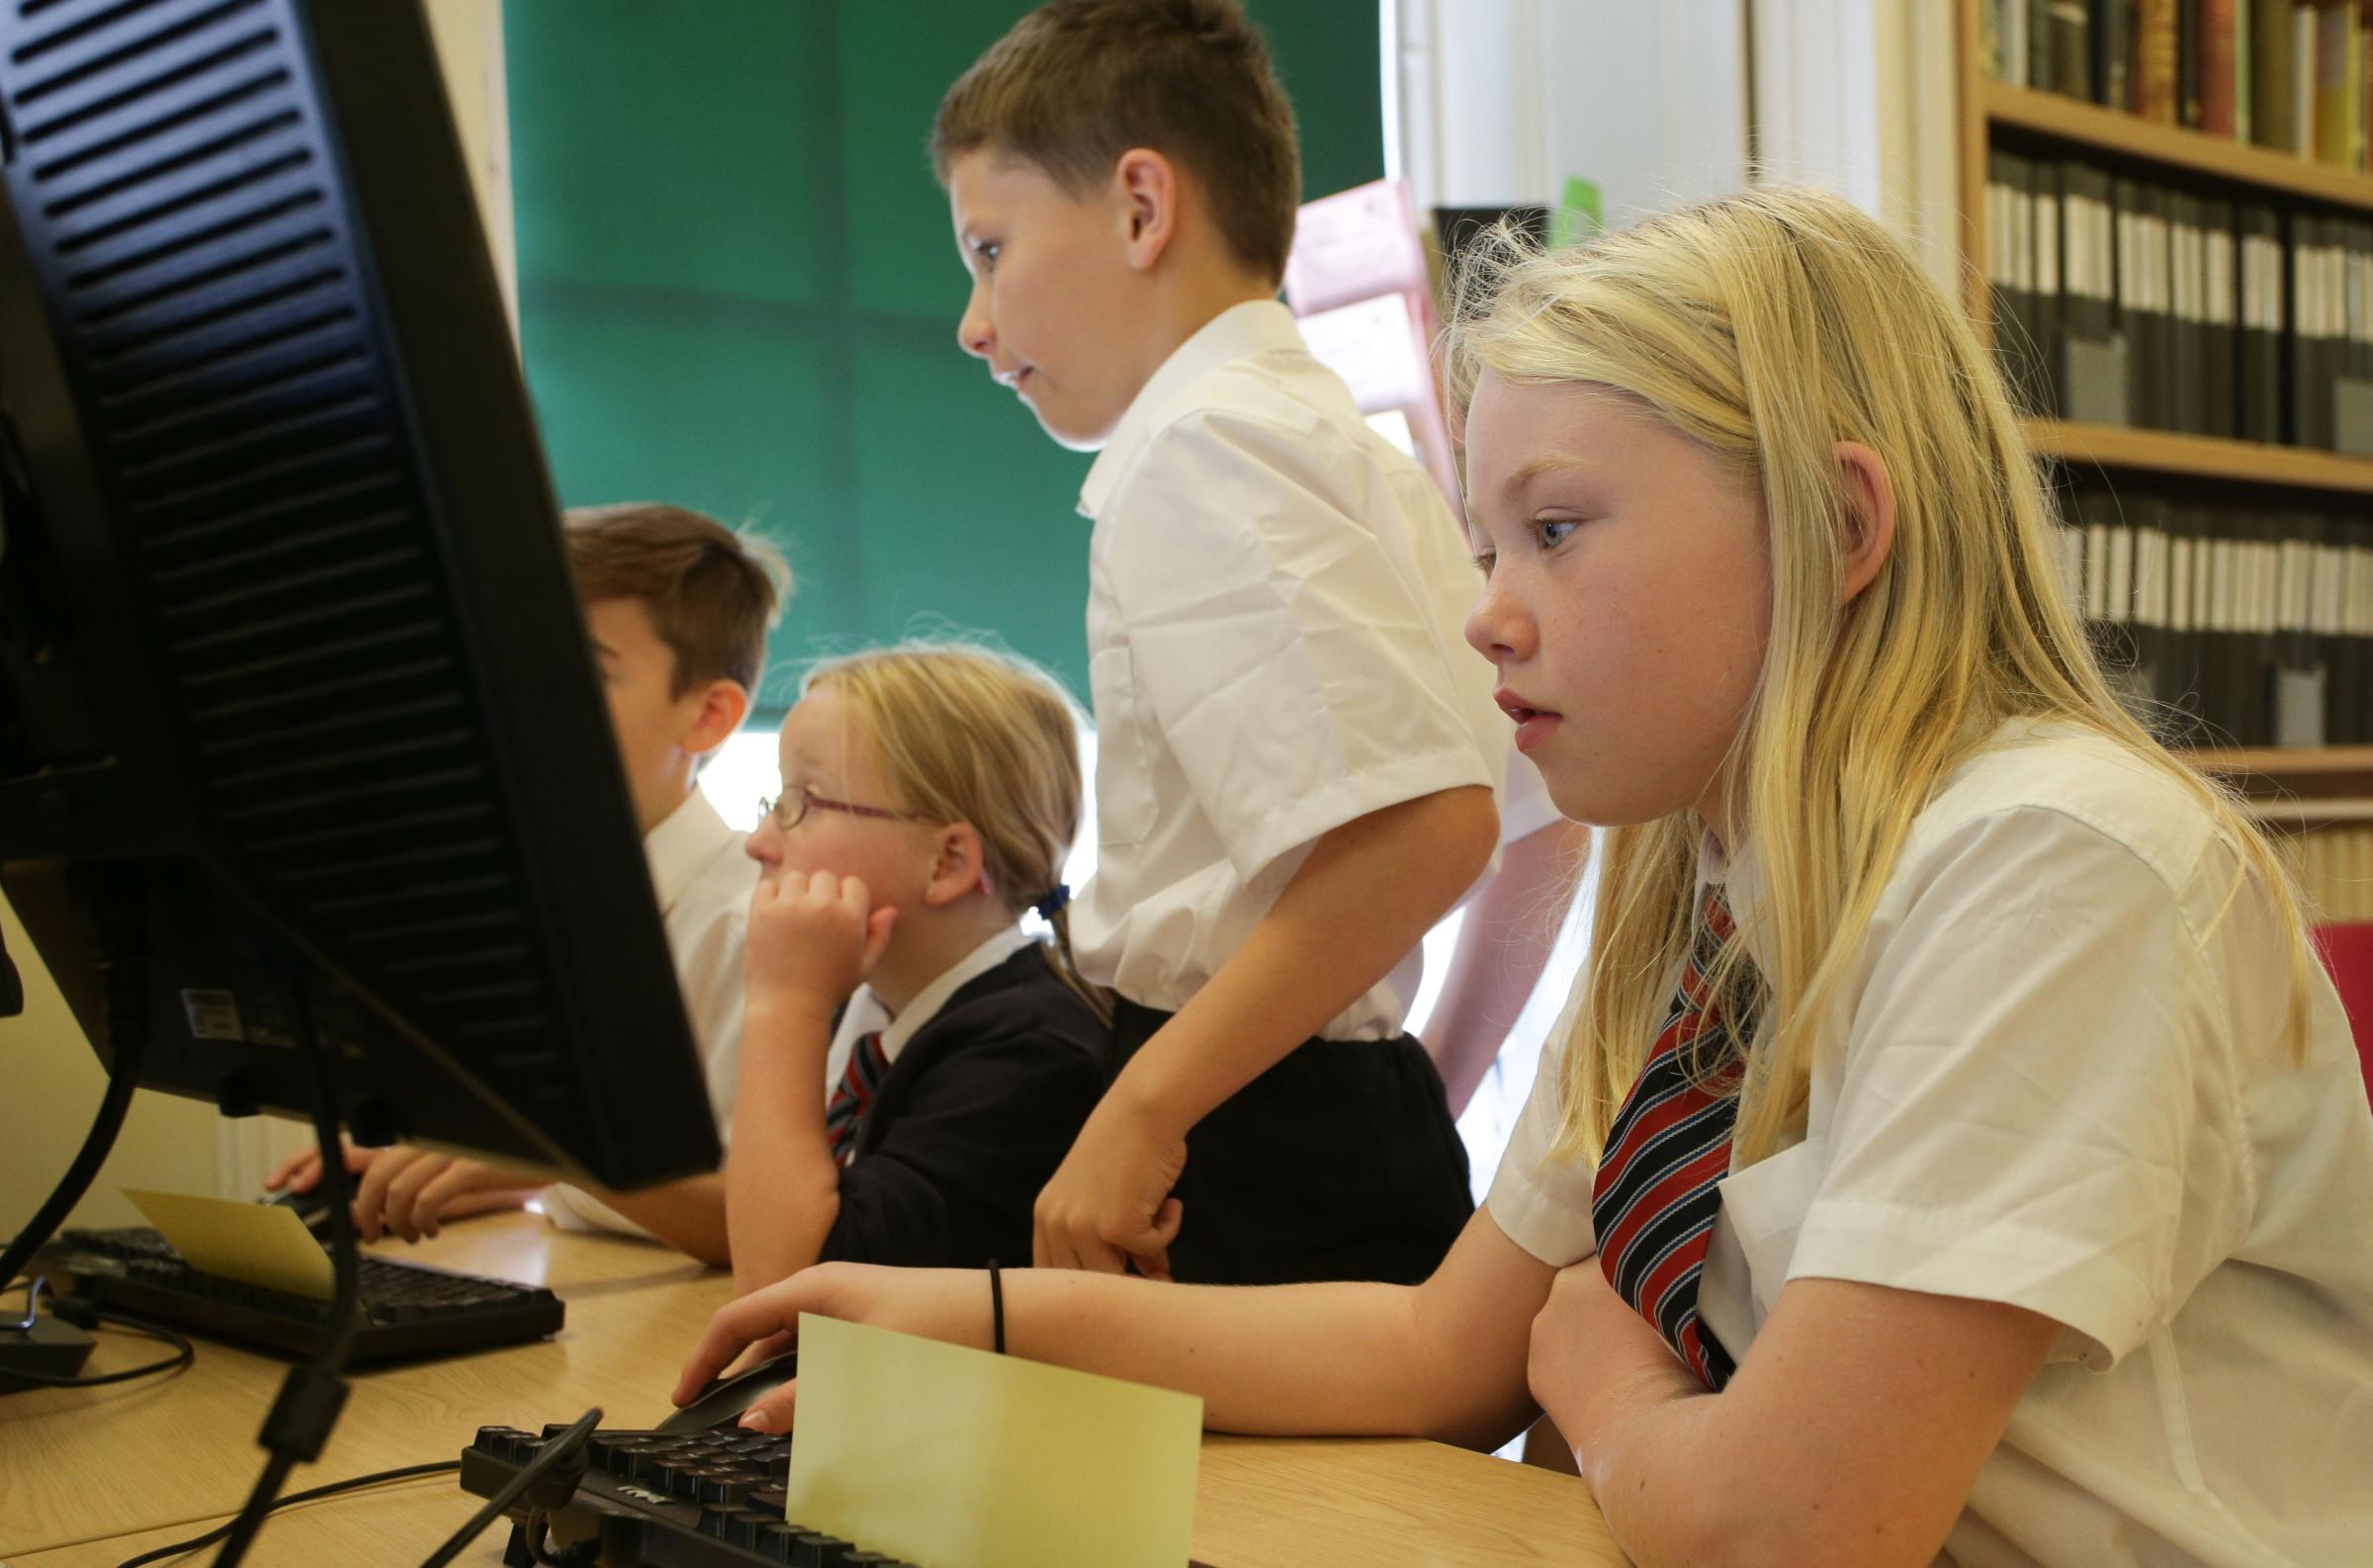 Primary school testing has proved controversial